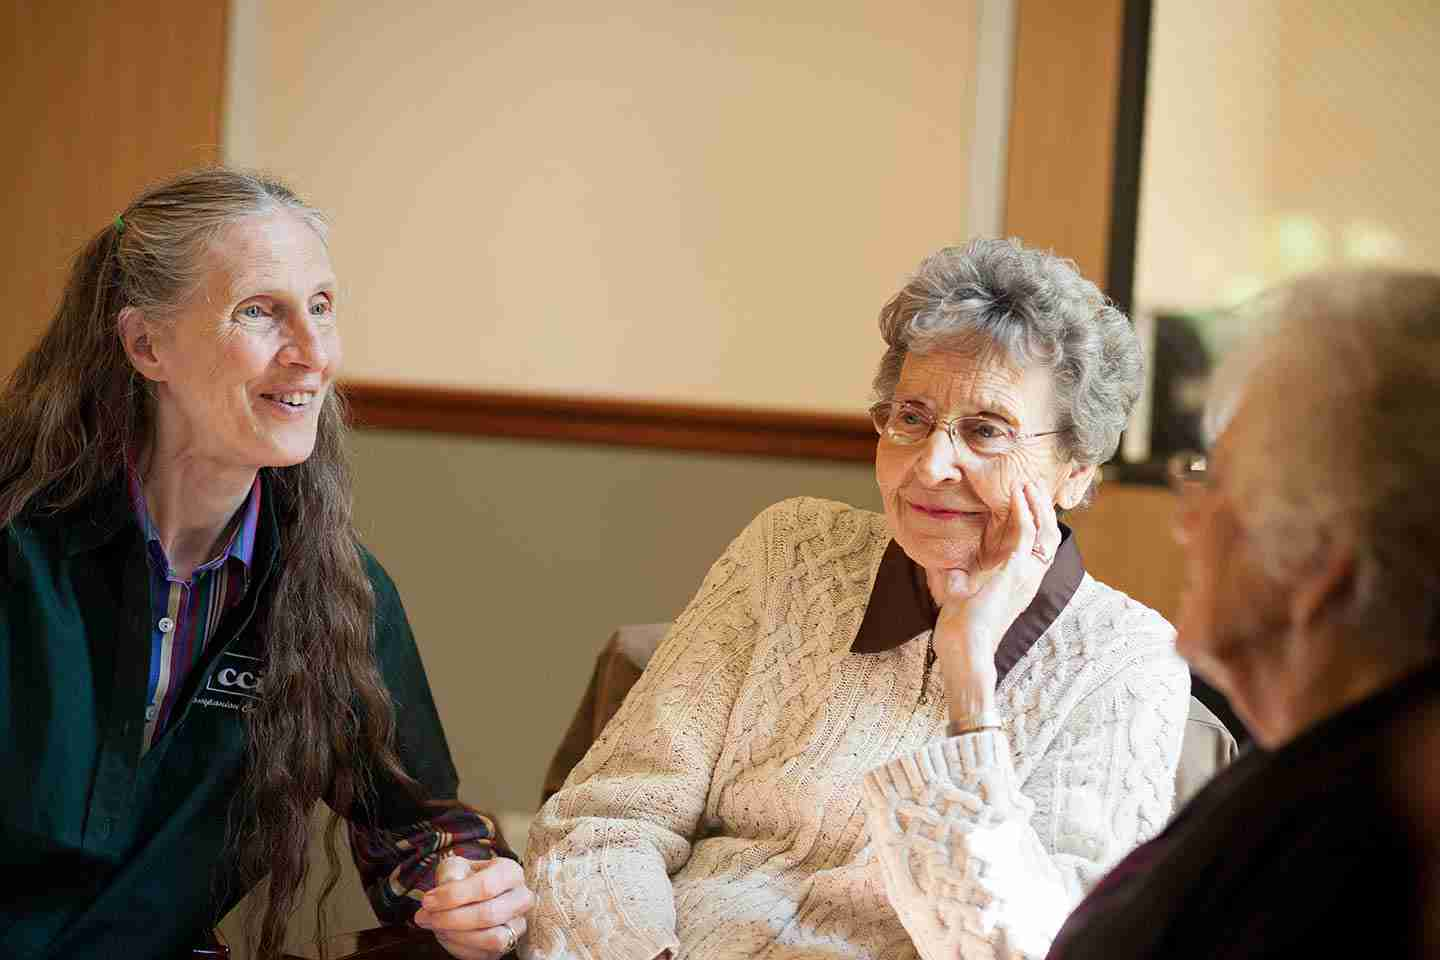 dementia woodinville wa | alzheimers washington